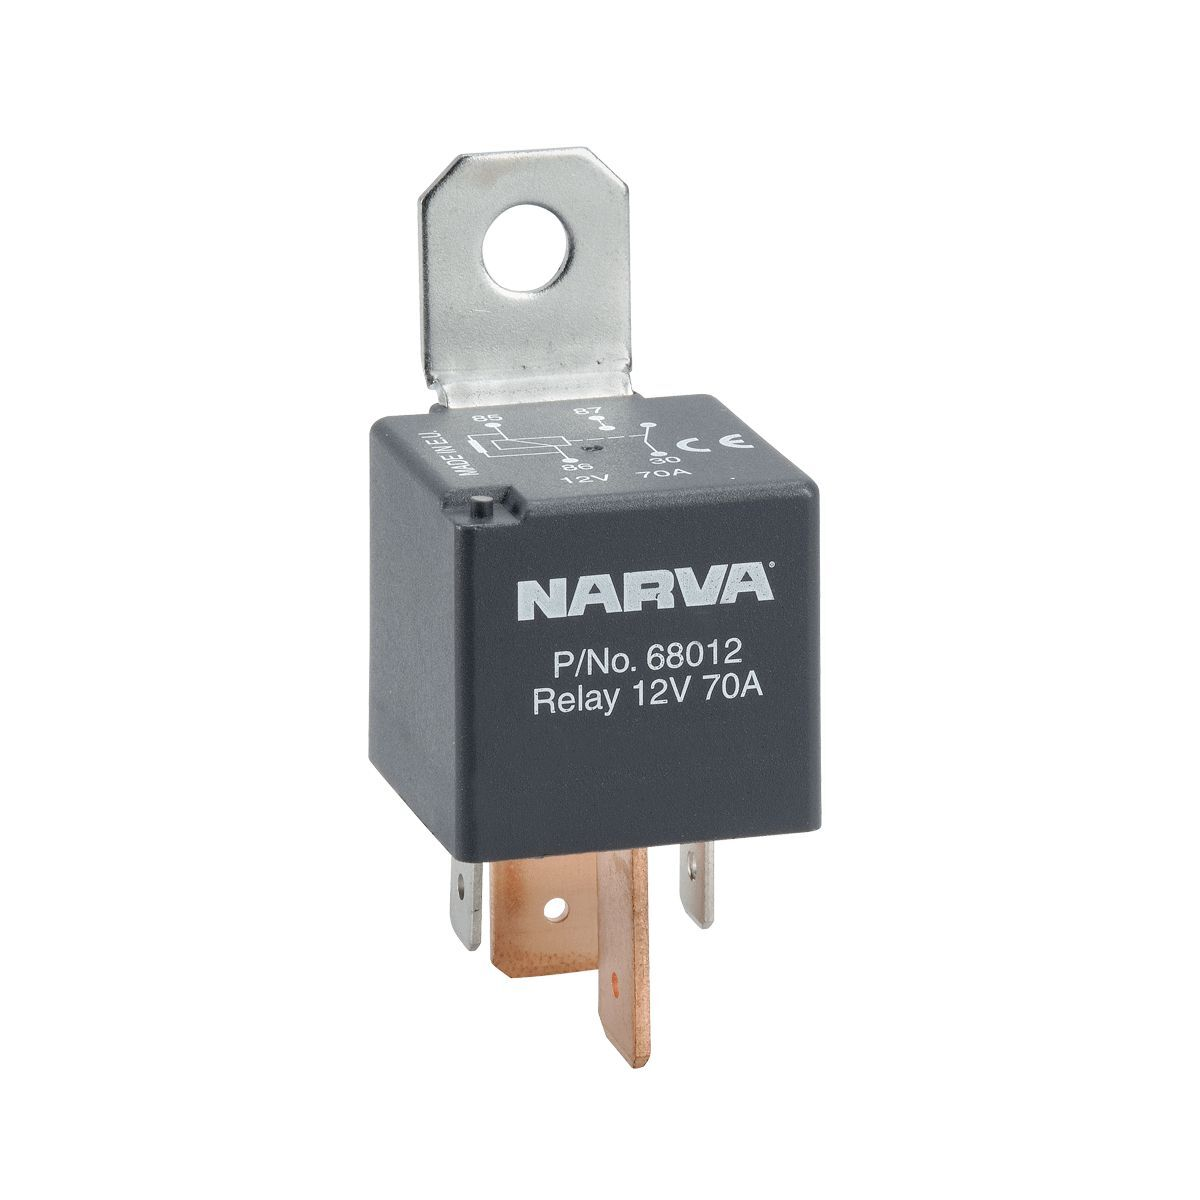 narva 12 volt relay wiring diagram fender super switch normally open 4 pin 70 amp resistor